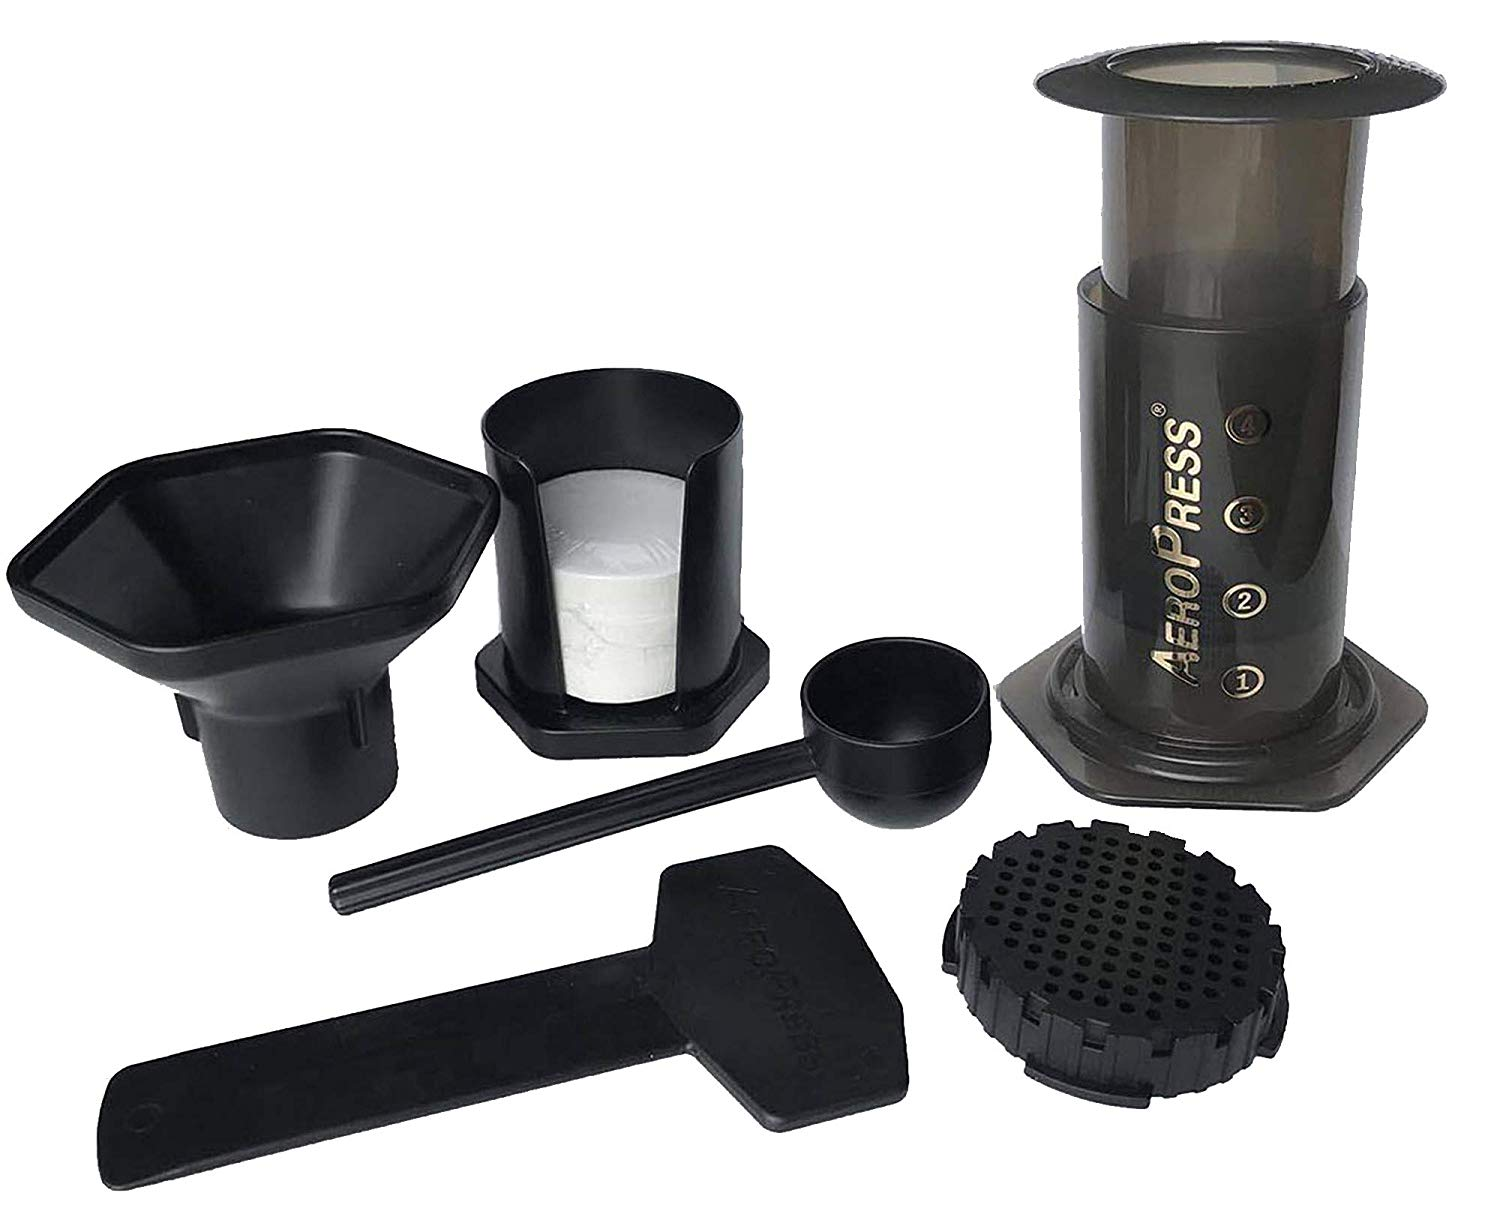 AeroPress Coffee Maker Supplies